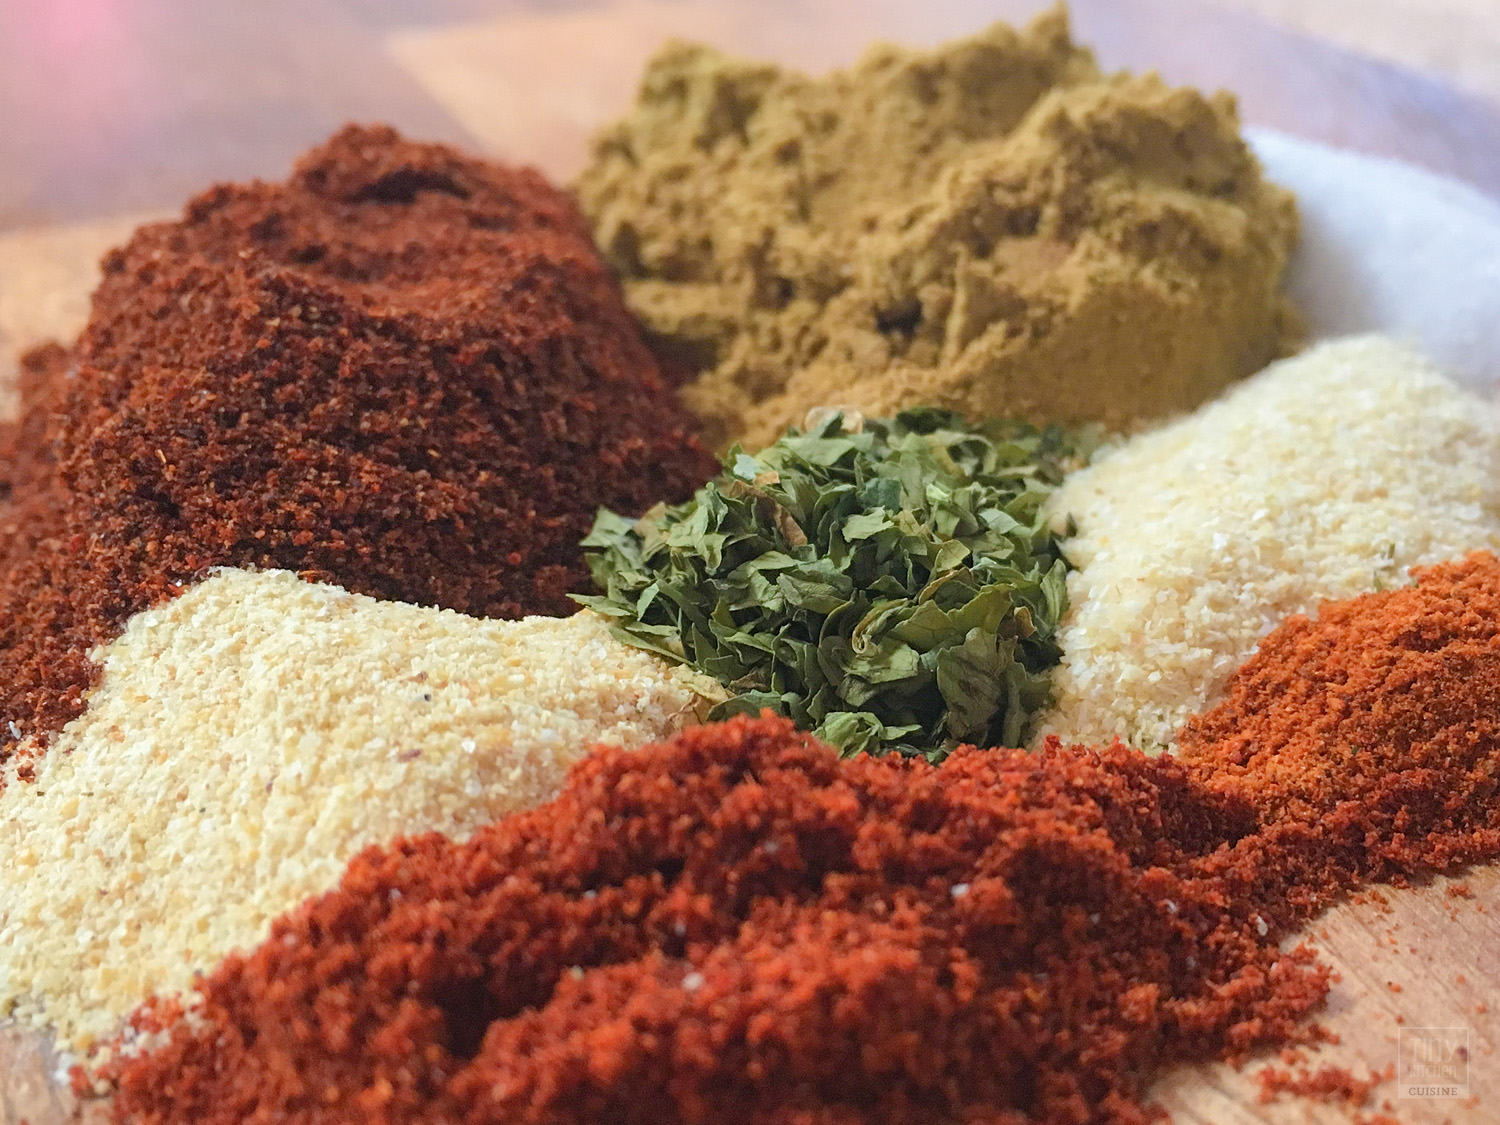 How to Make Homemade Taco Seasoning Mix | Tiny Kitchen Cuisine | https://tiny.kitchen/